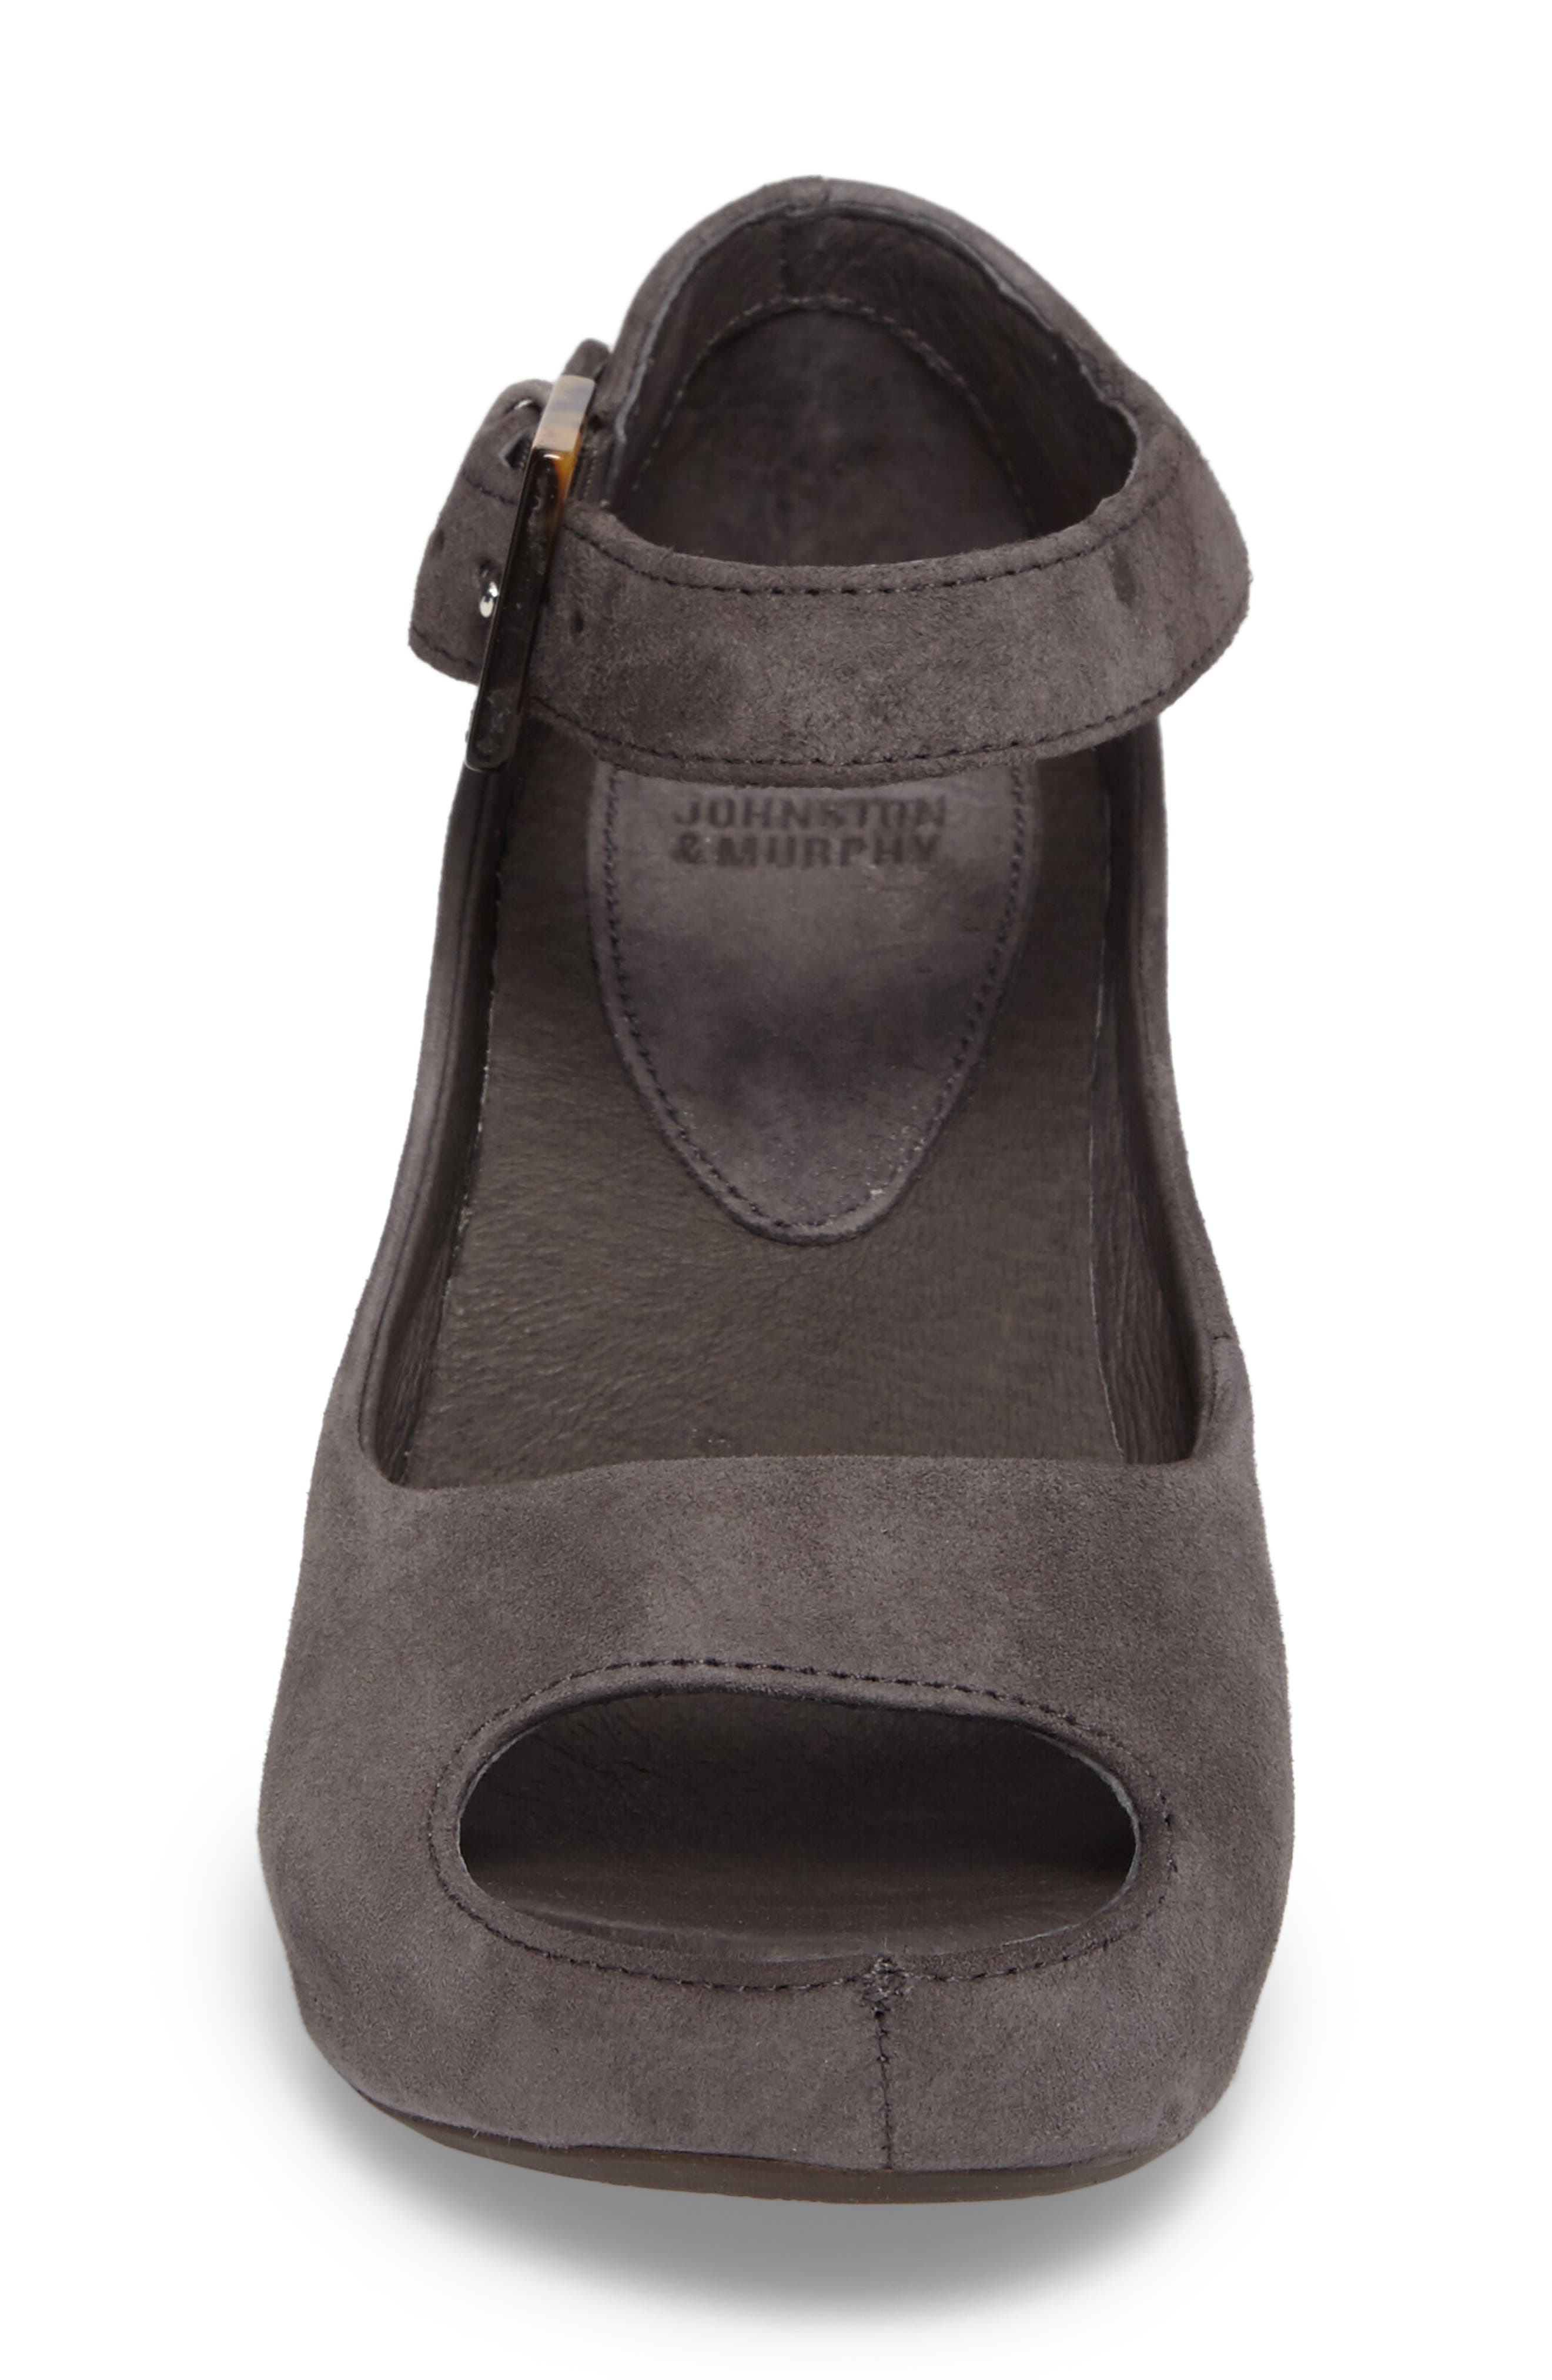 'Tricia' Ankle Strap Sandal,                             Alternate thumbnail 5, color,                             Gray Suede